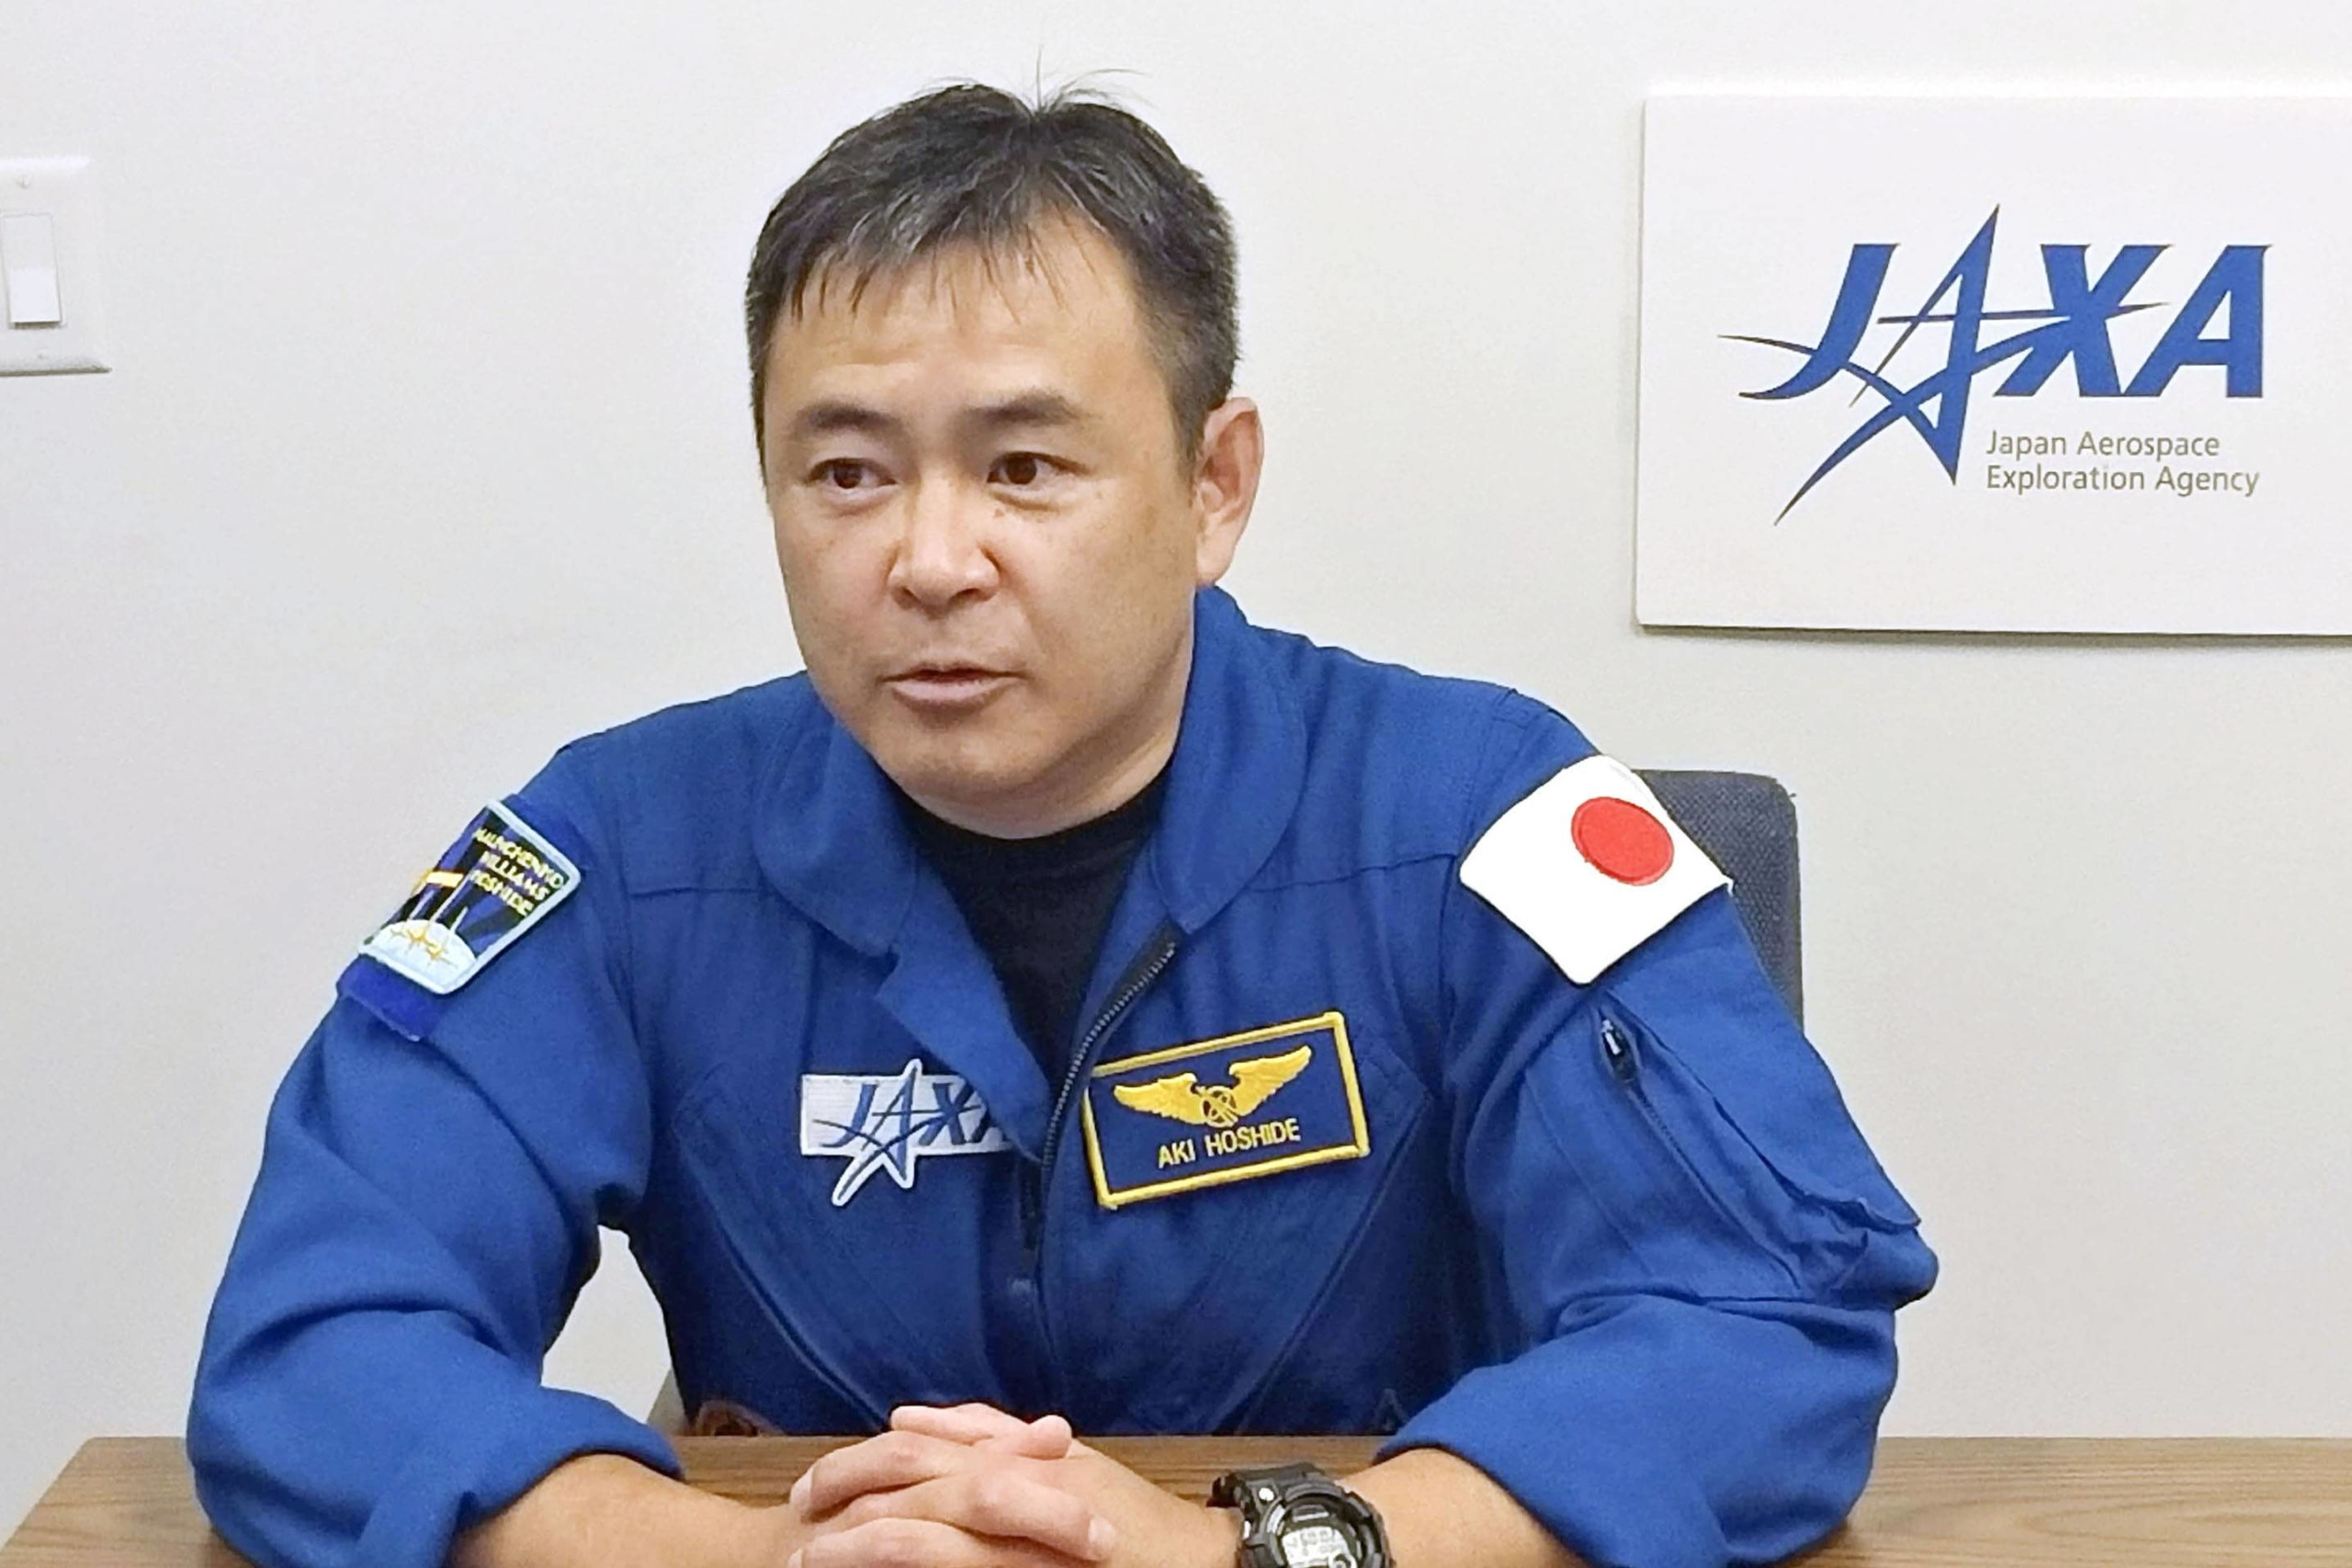 NASA is targeting April 20 at the earliest for another launch of a SpaceX ship that will carry Japan's Akihiko Hoshide and three other astronauts to the International Space Station. | JAXA / VIA KYODO